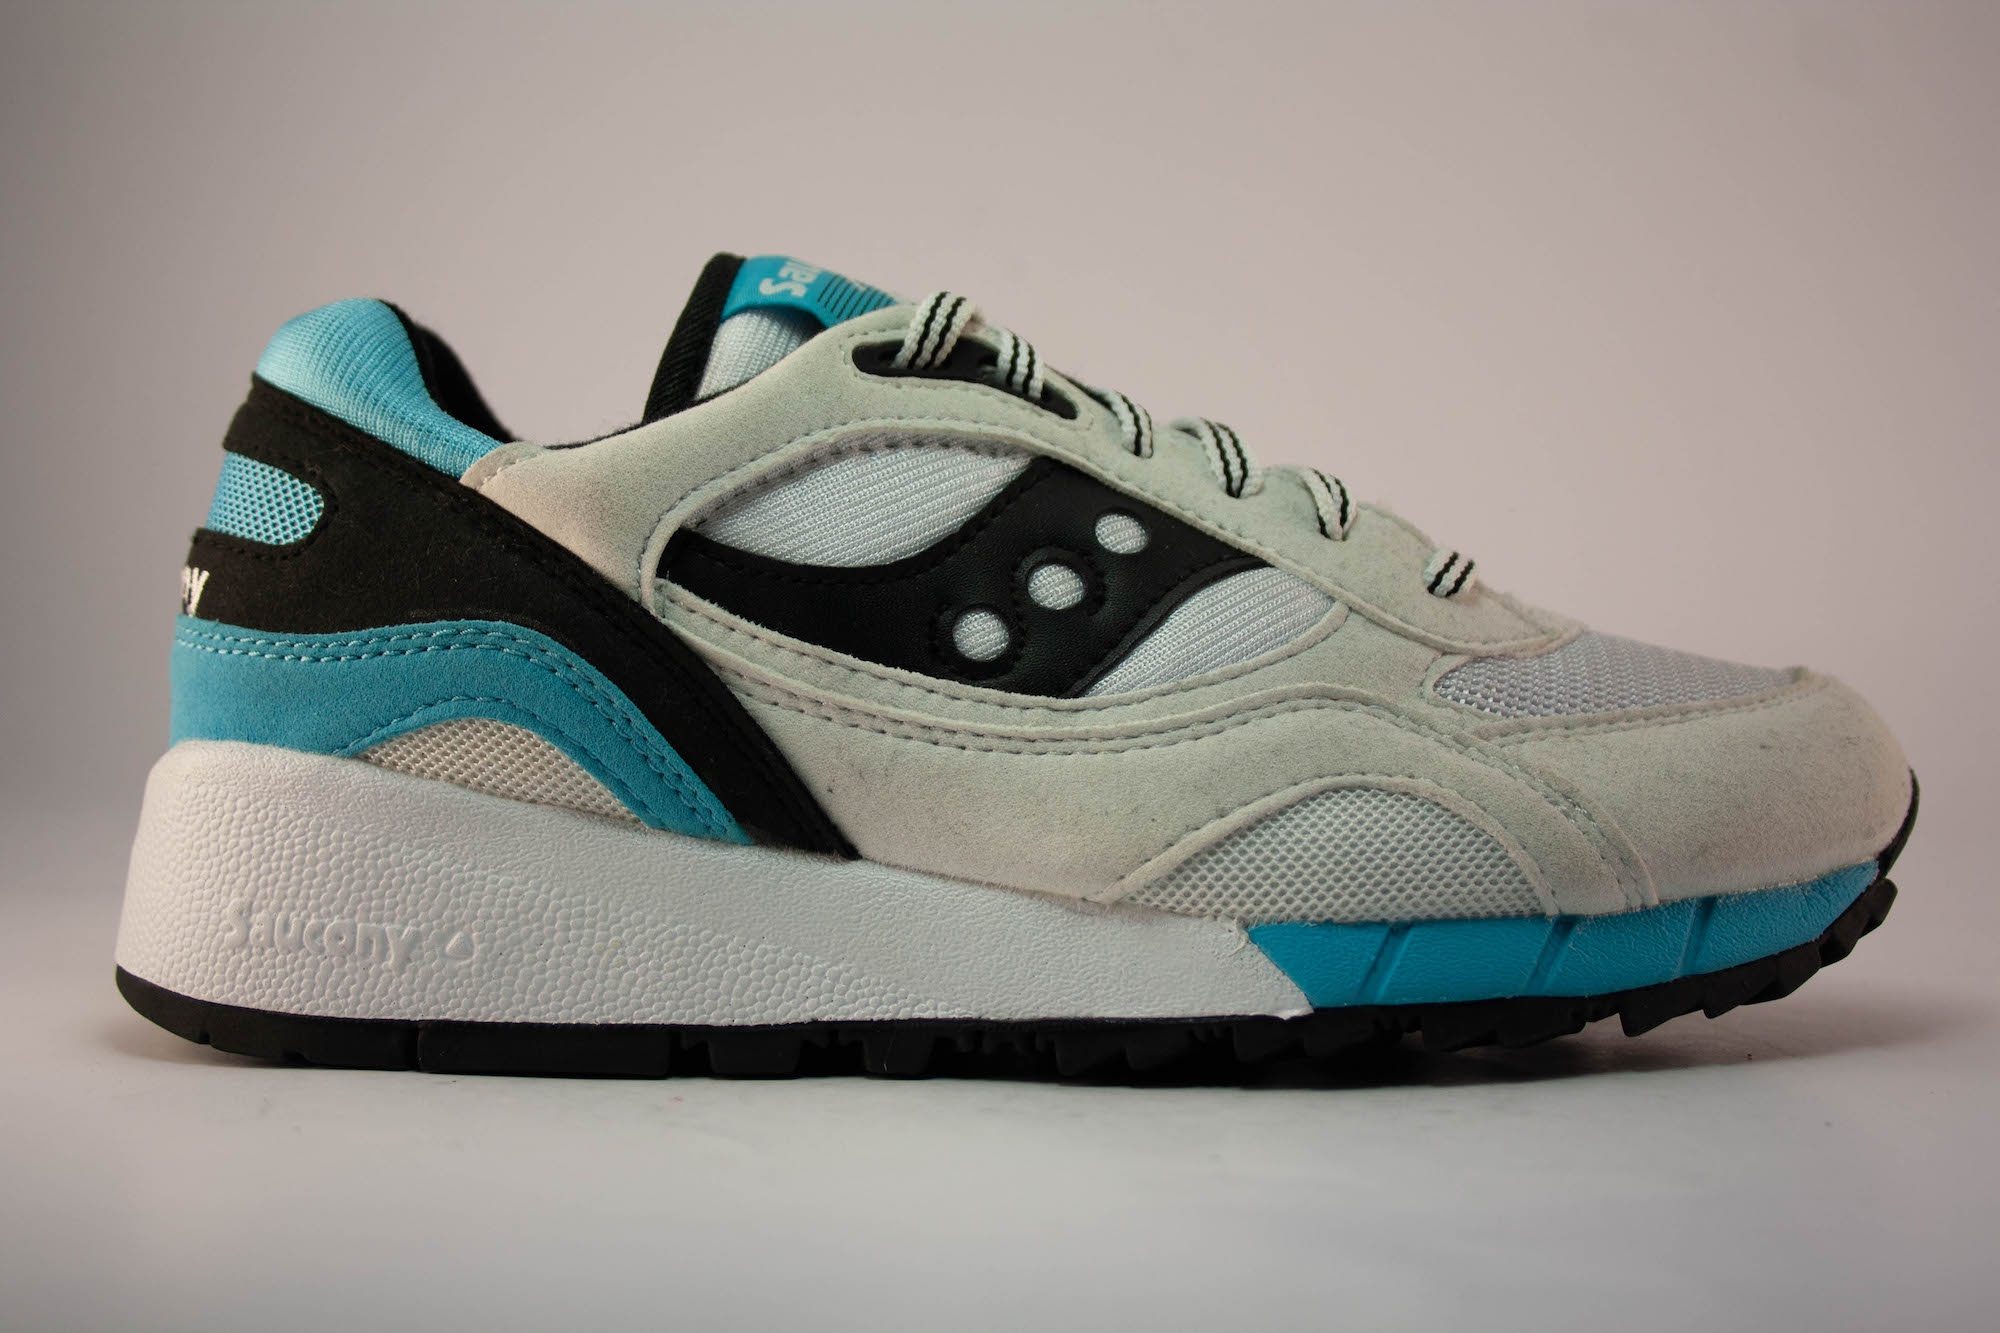 Saucony X Feature Living Fossil Shonisaurus Shadow 6000 GreenGreen